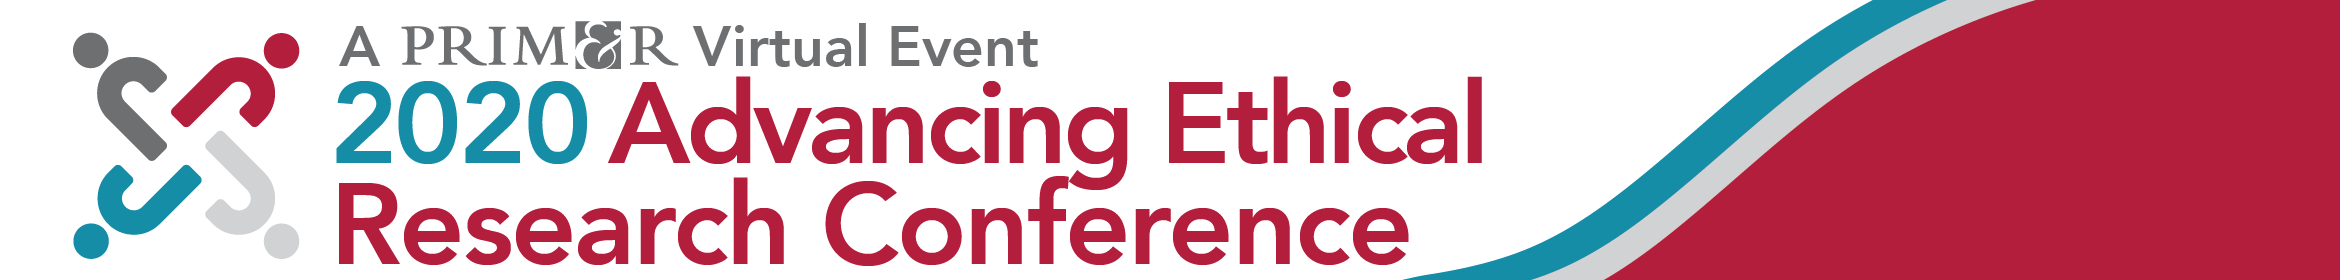 2020 Advancing Ethical Research Virtual Conference Main banner